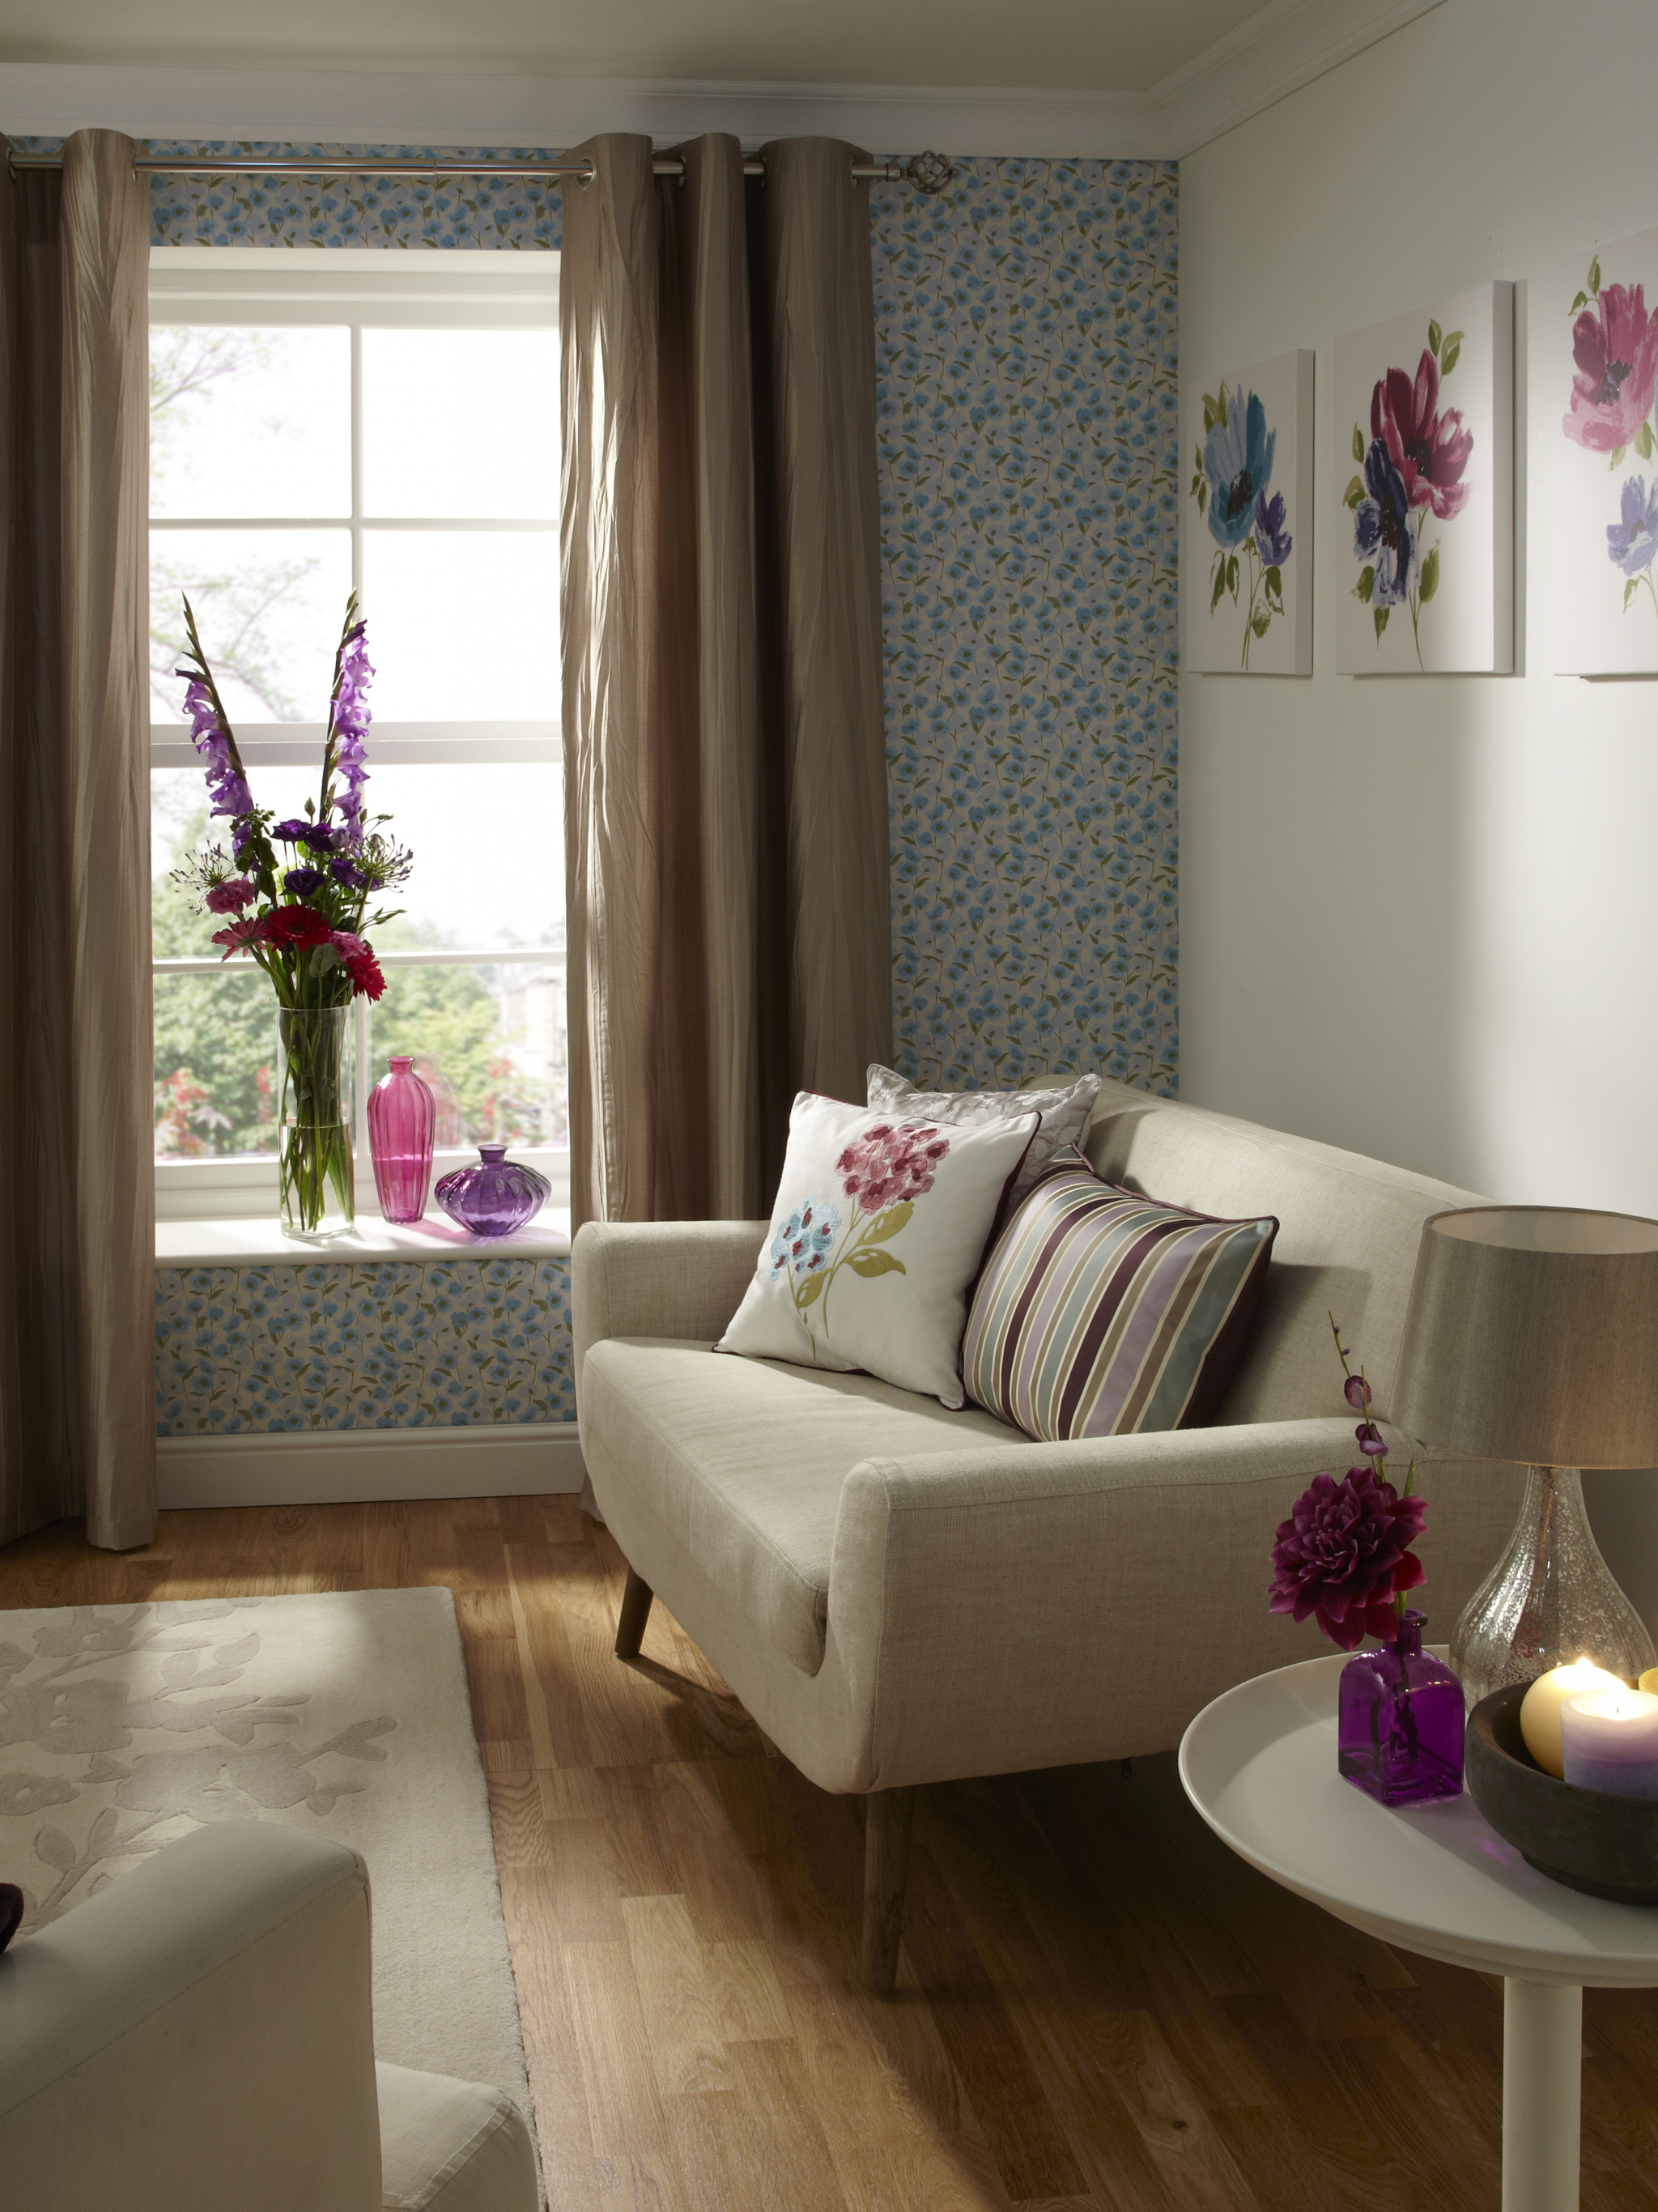 Iliv In Bloom Bed Linen Throws